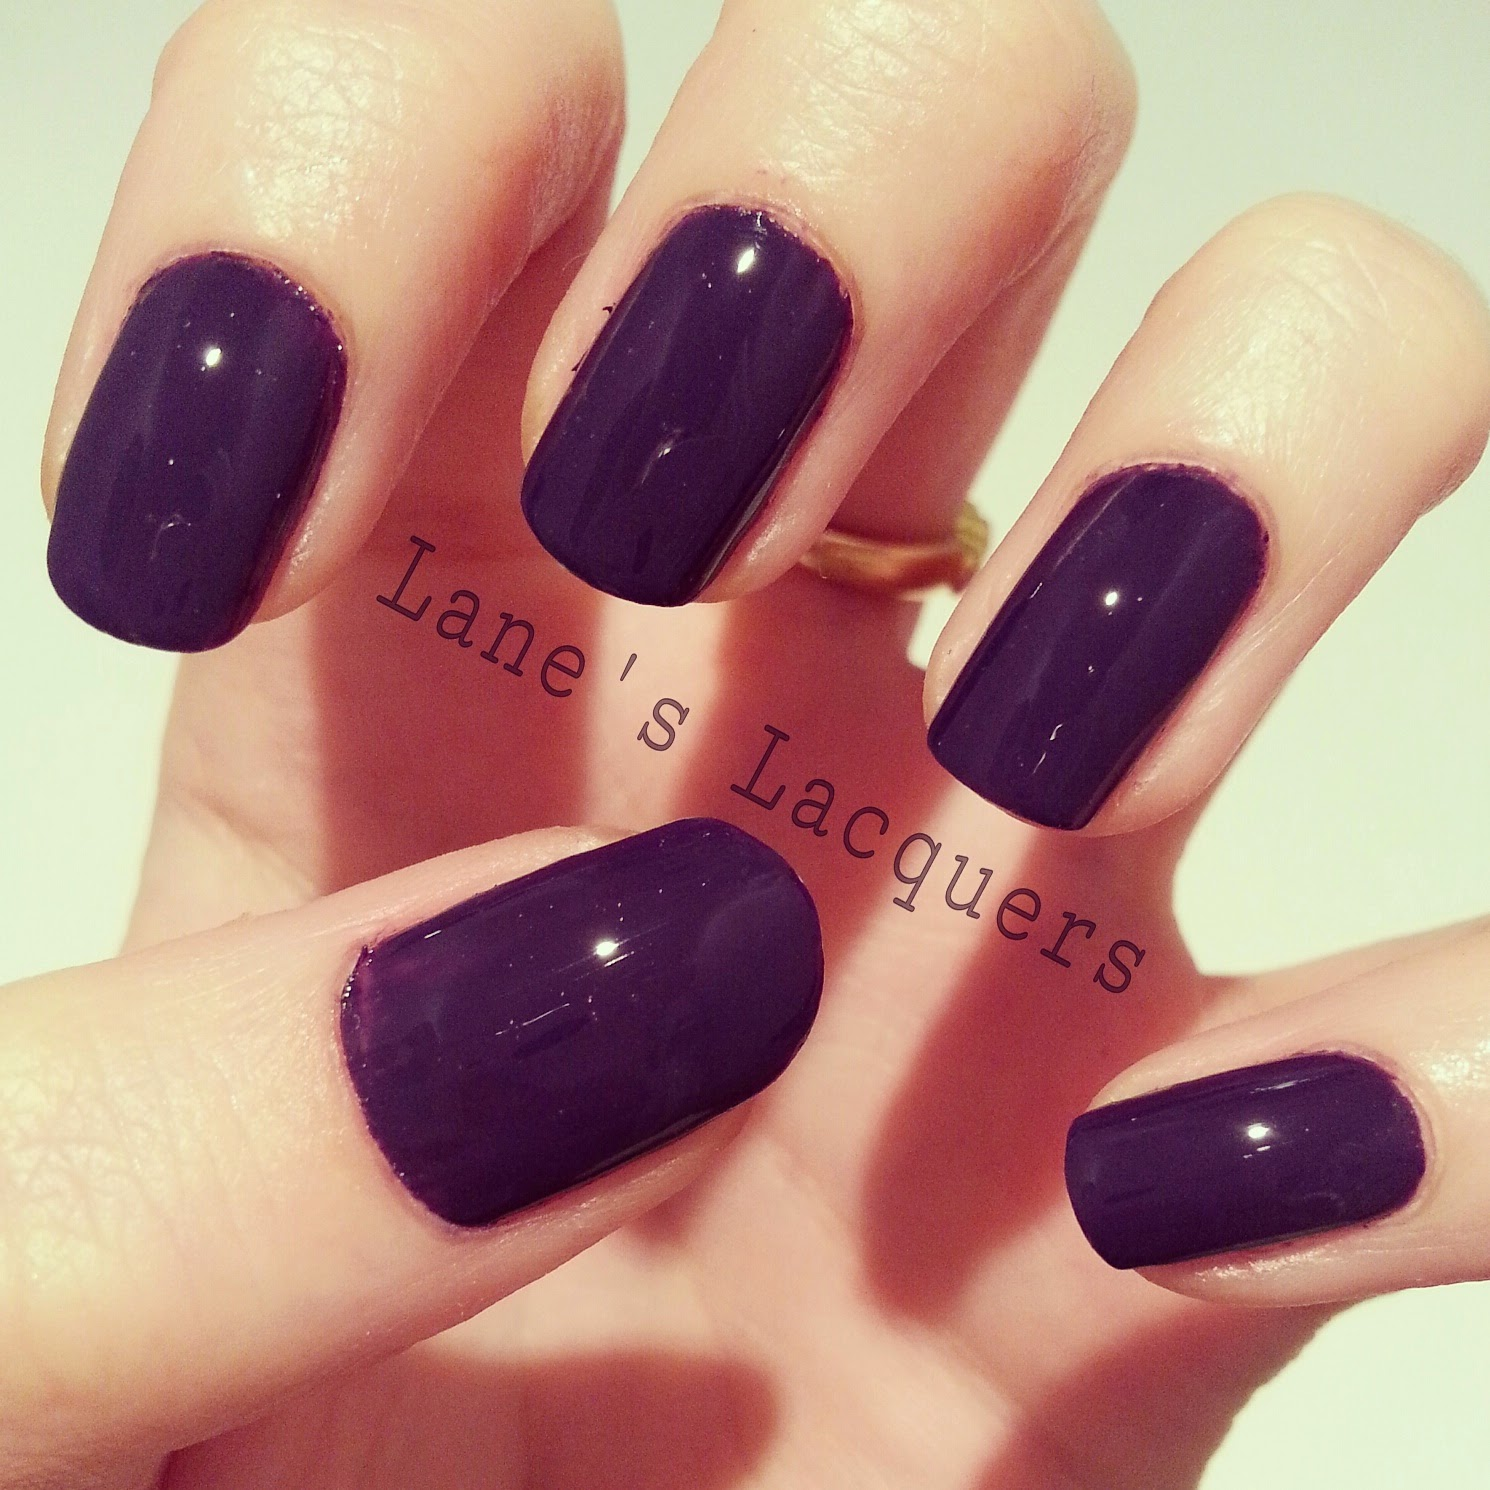 nails-inc-glamour-magazine-wigmore-street-swatch-manicure